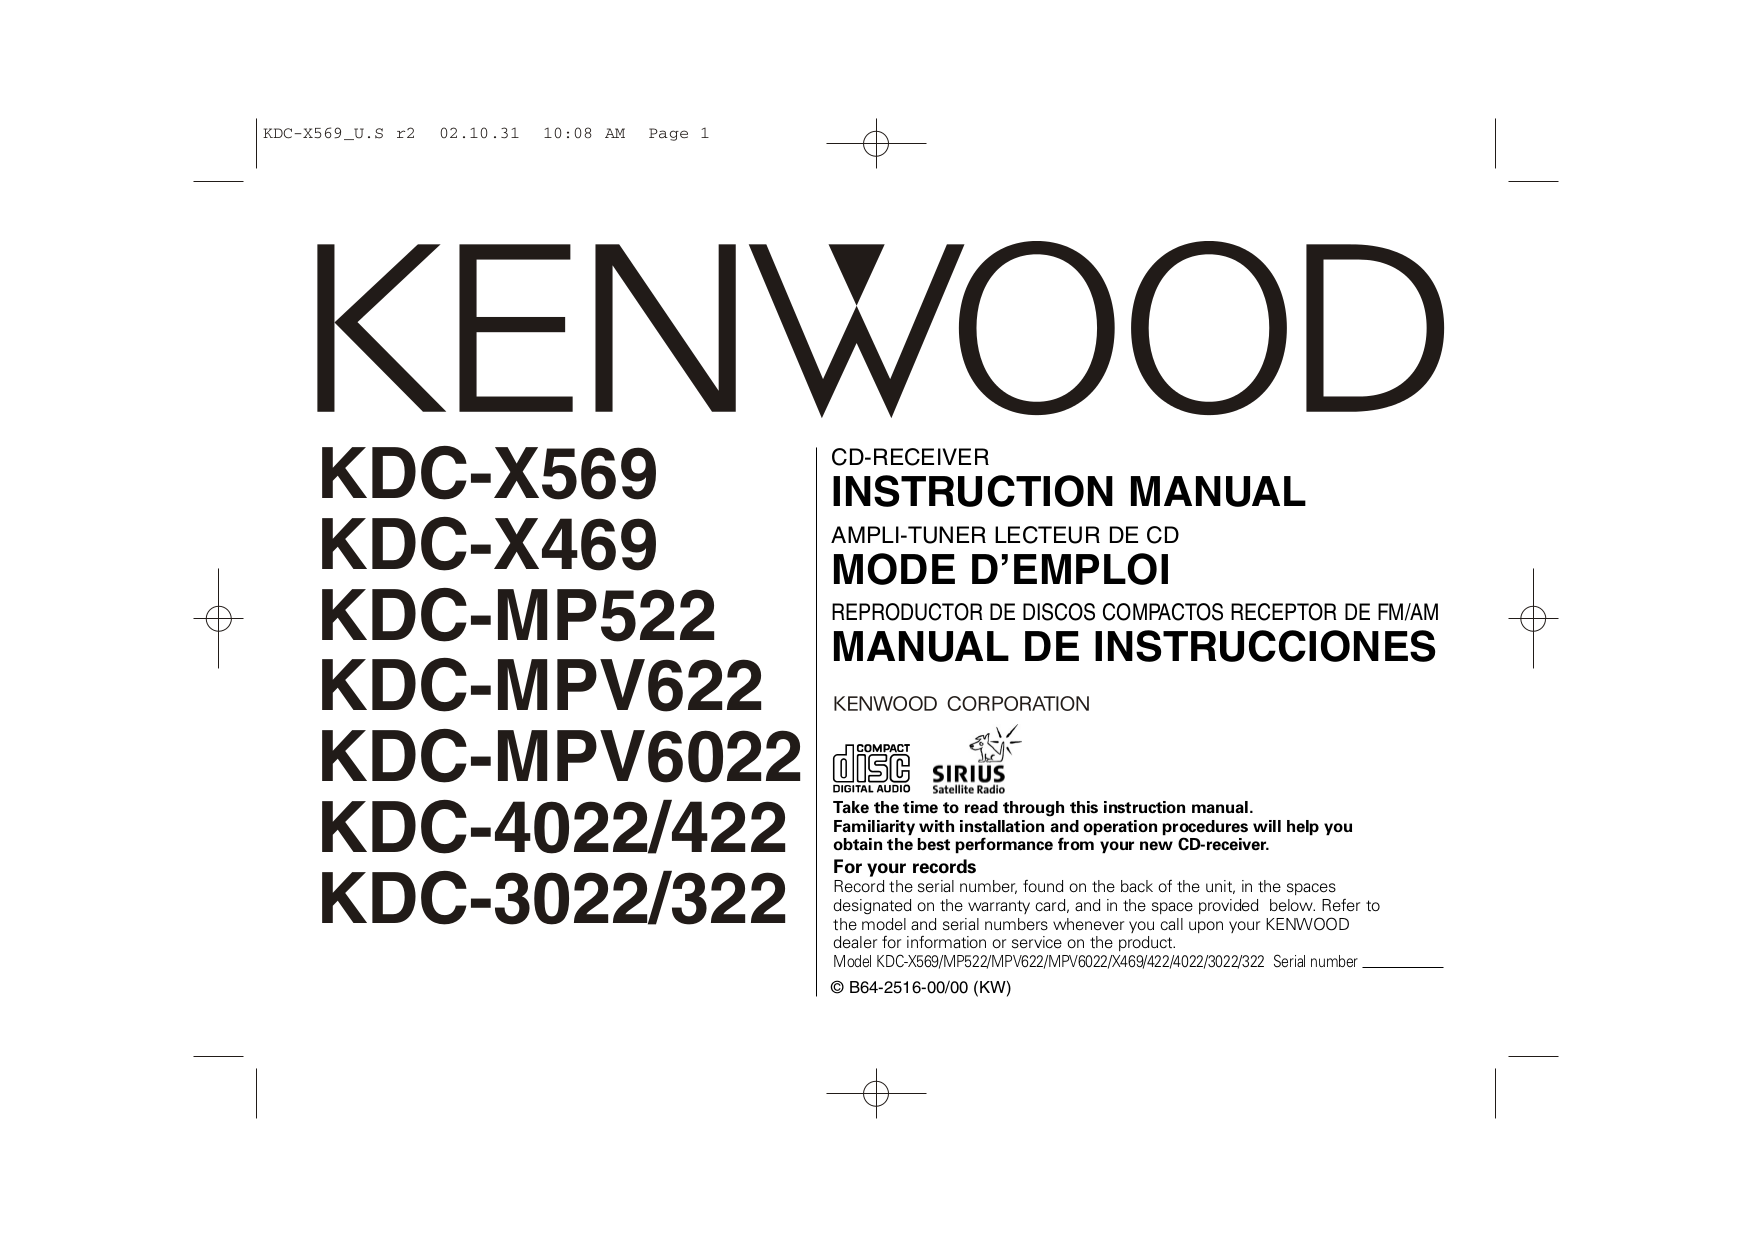 download free pdf for kenwood kdc 322 car receiver manual rh umlib com Kenwood Instruction Manual Kenwood Home Stereo System Manuals